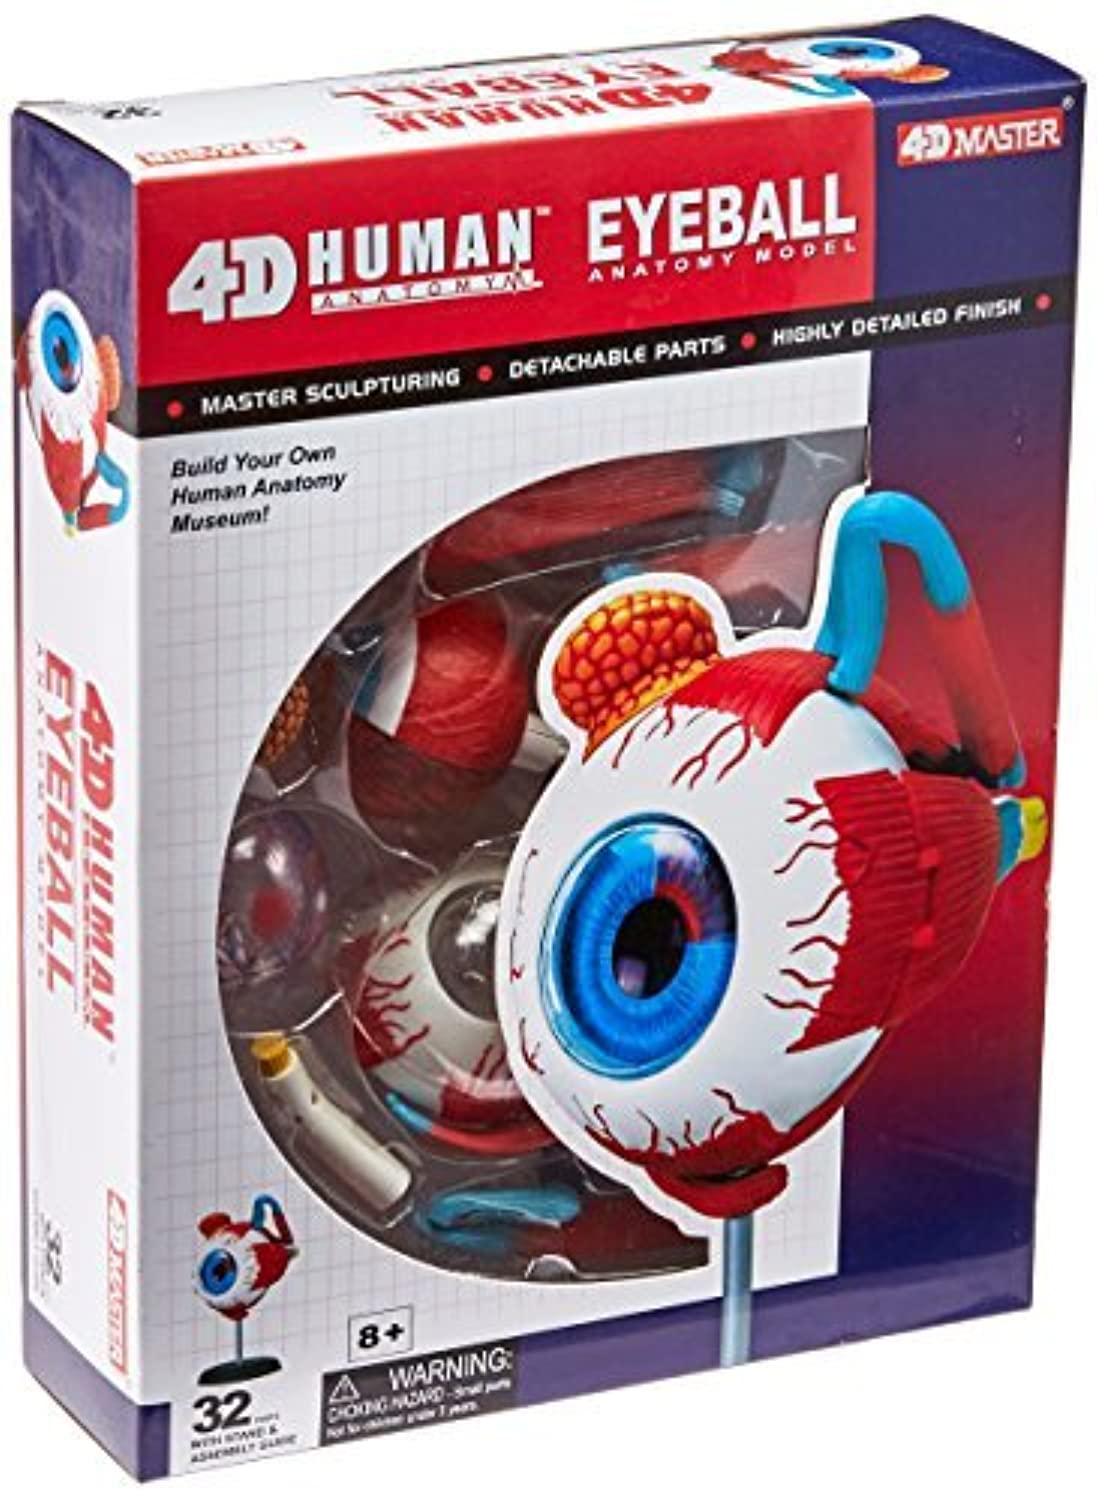 Tedco Human Anatomy - Eyeball Anatomy Model by TEDCO